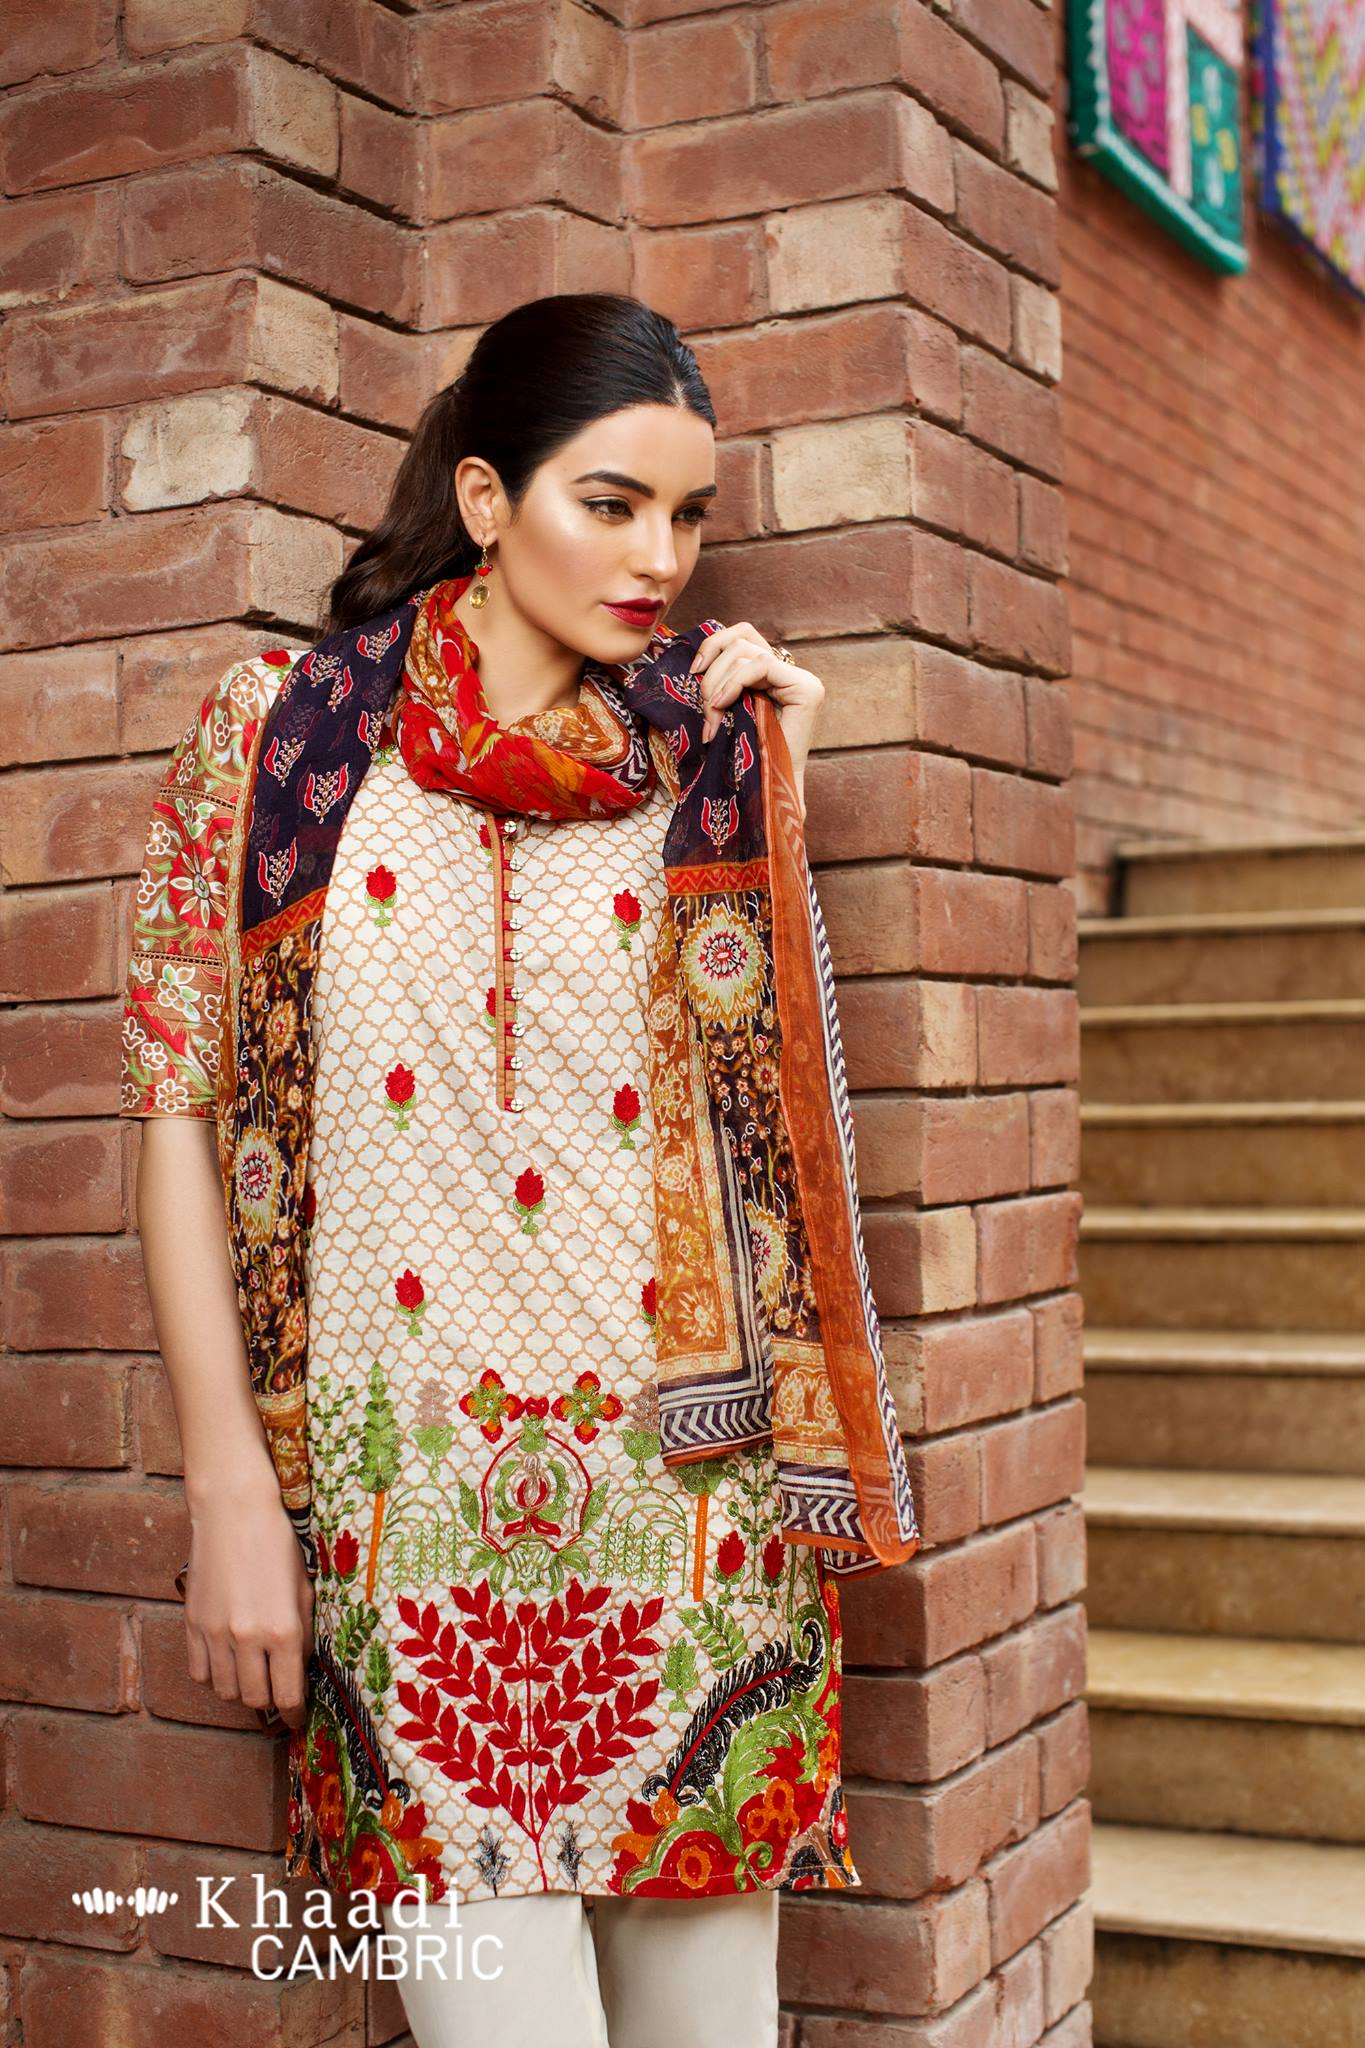 A Collection Of The Most: Khaadi Unstitched Cambric Collection: Price And Catalog